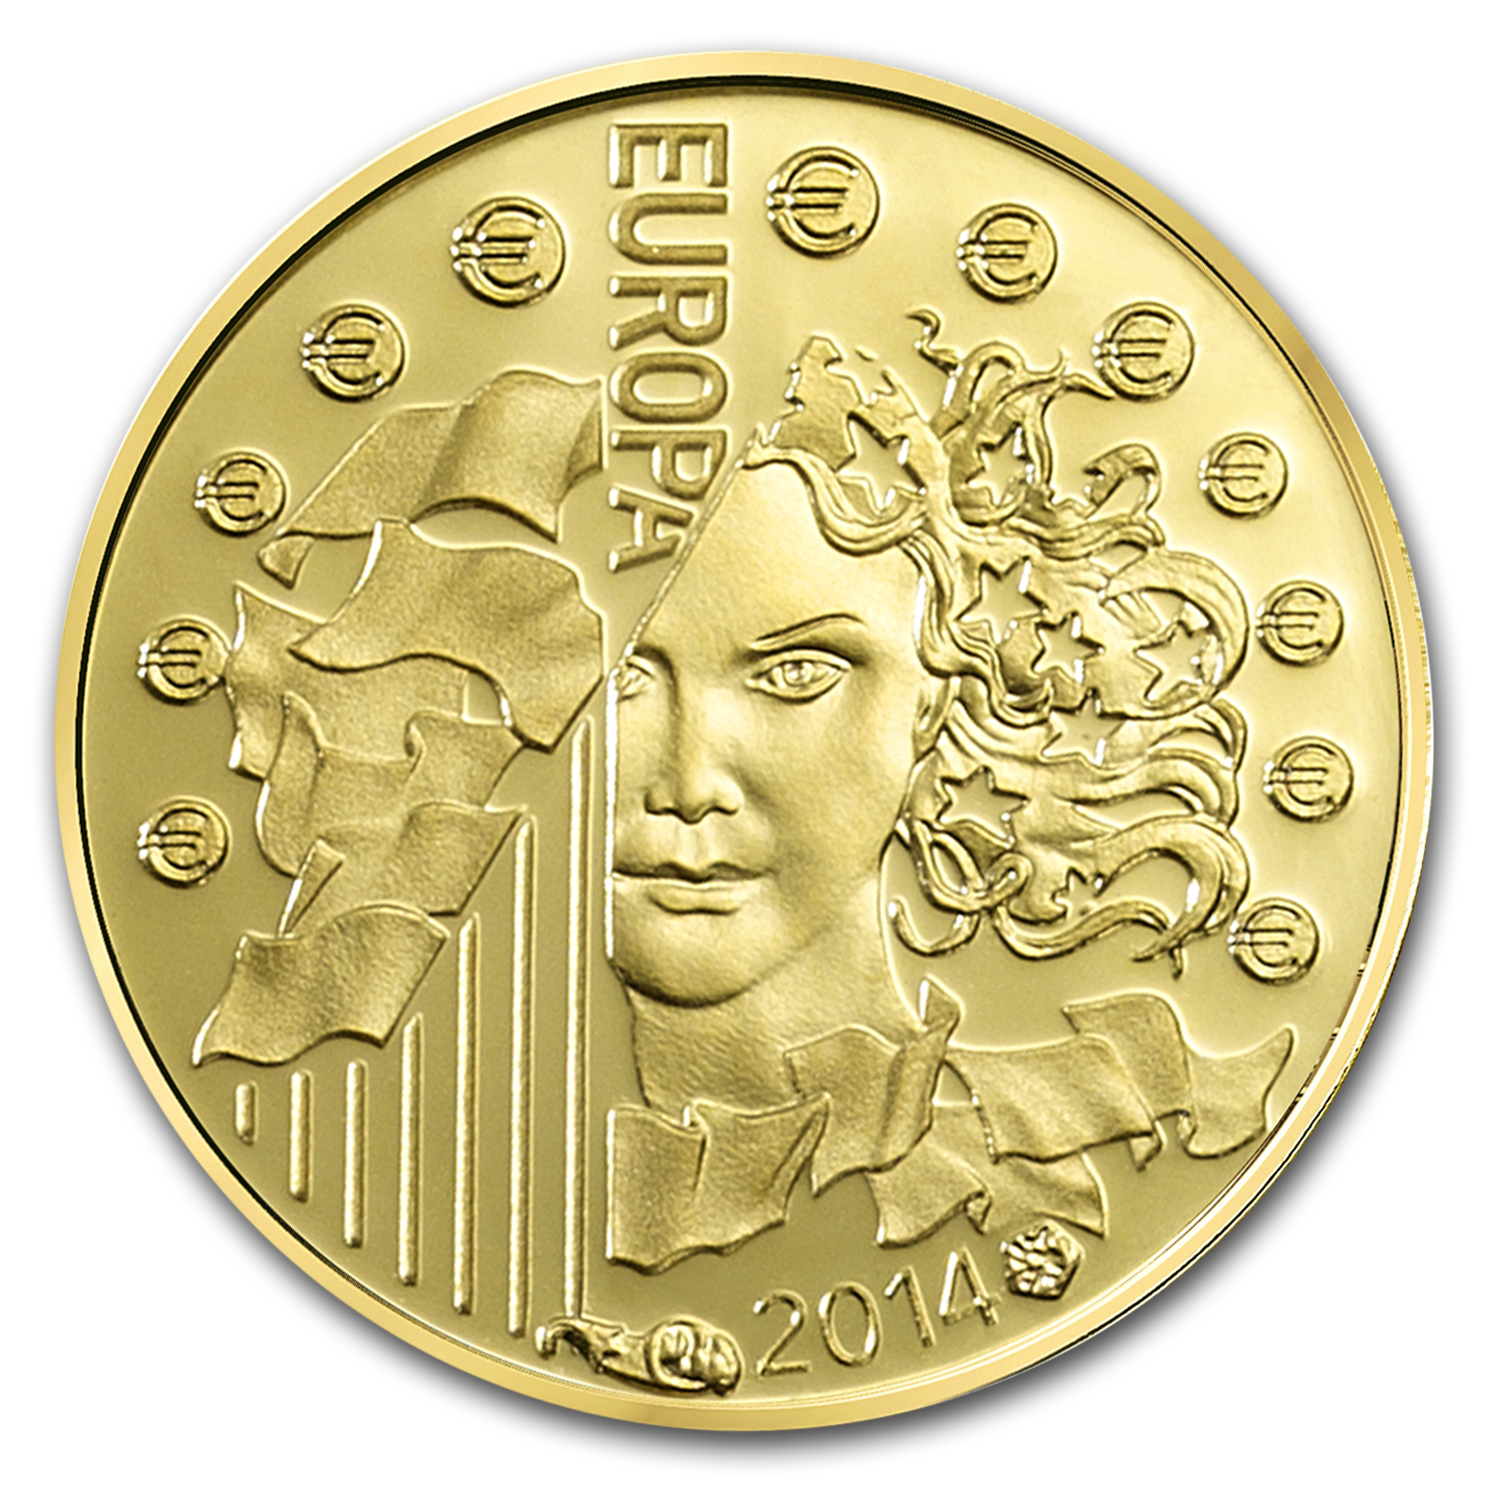 2014 5 oz Proof Gold €500 Europa-European Space Agency